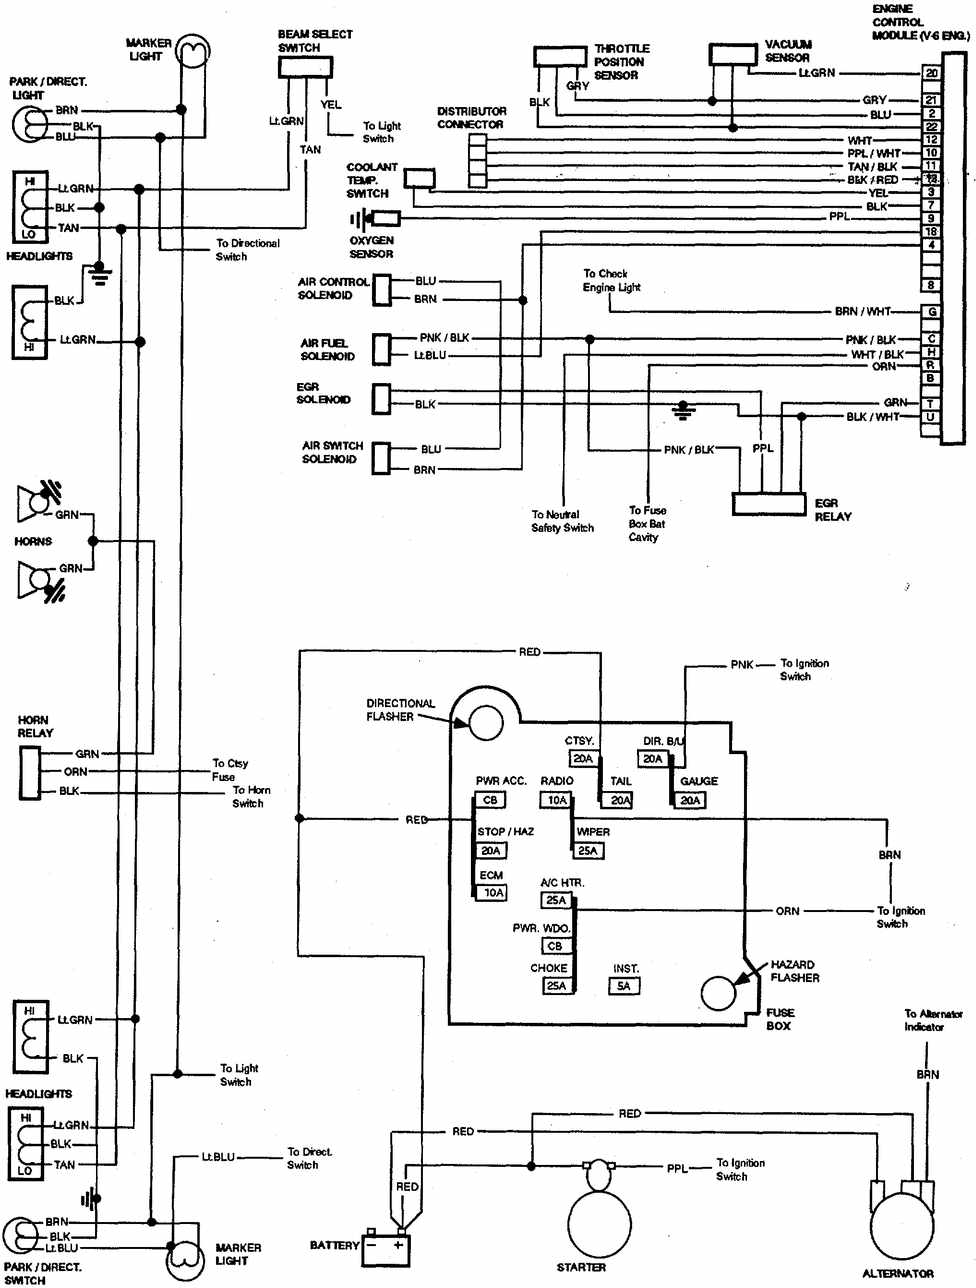 1998 chevy s10 horn wiring diagram